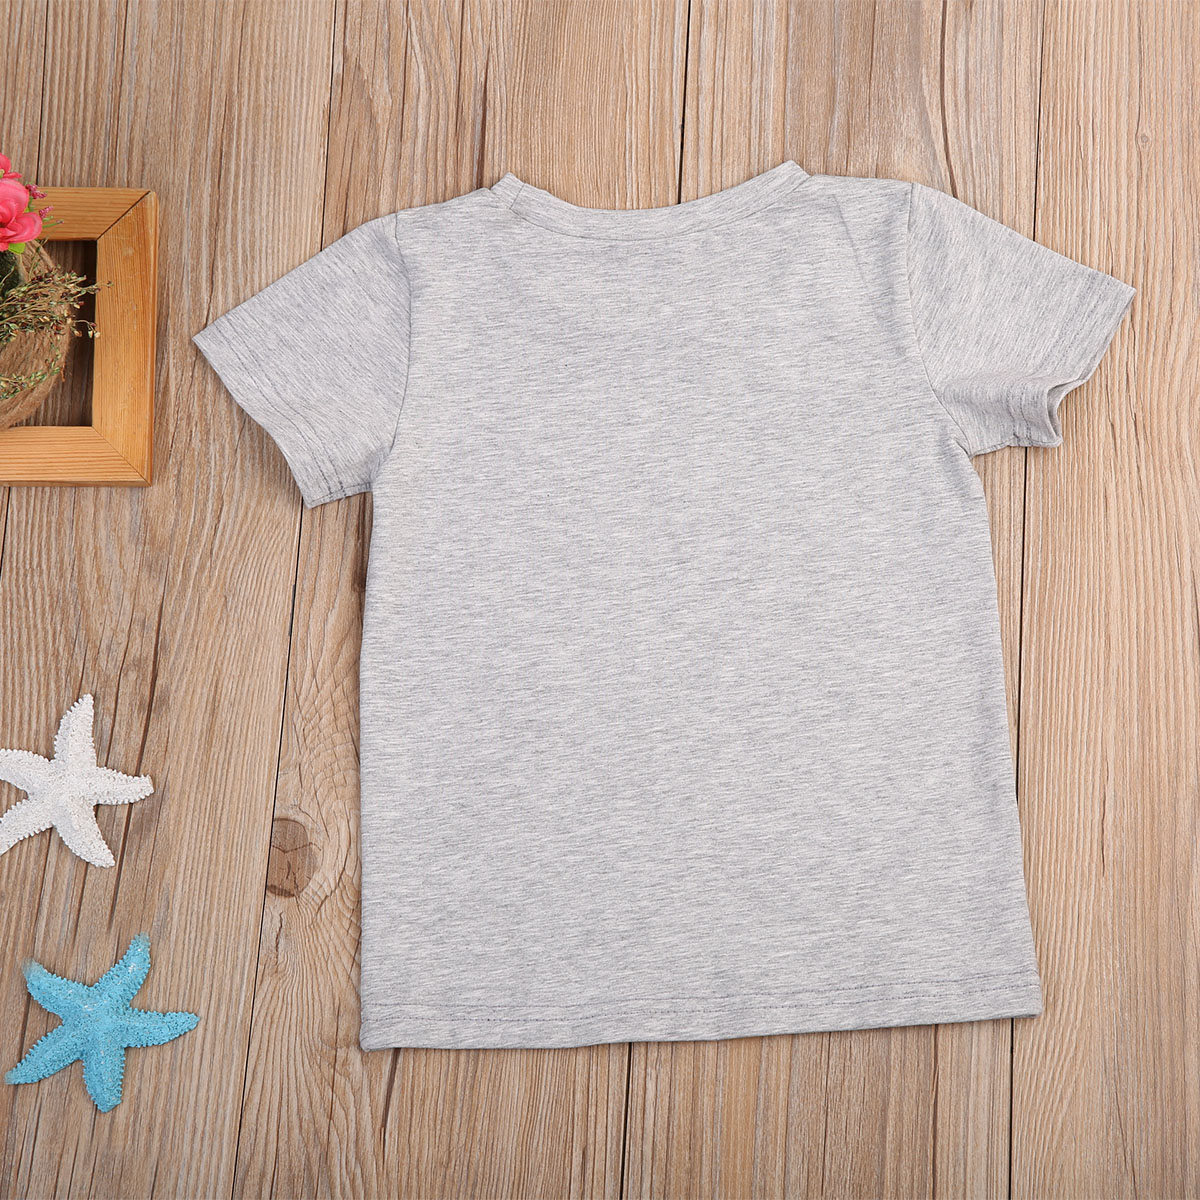 Toddlers-Kids-Baby-Boys-Summer-Gray-Short-Sleeve-Tops-T-Shirt-Clothes-For-Kids-1-6Y-Fashion-Clothing-5